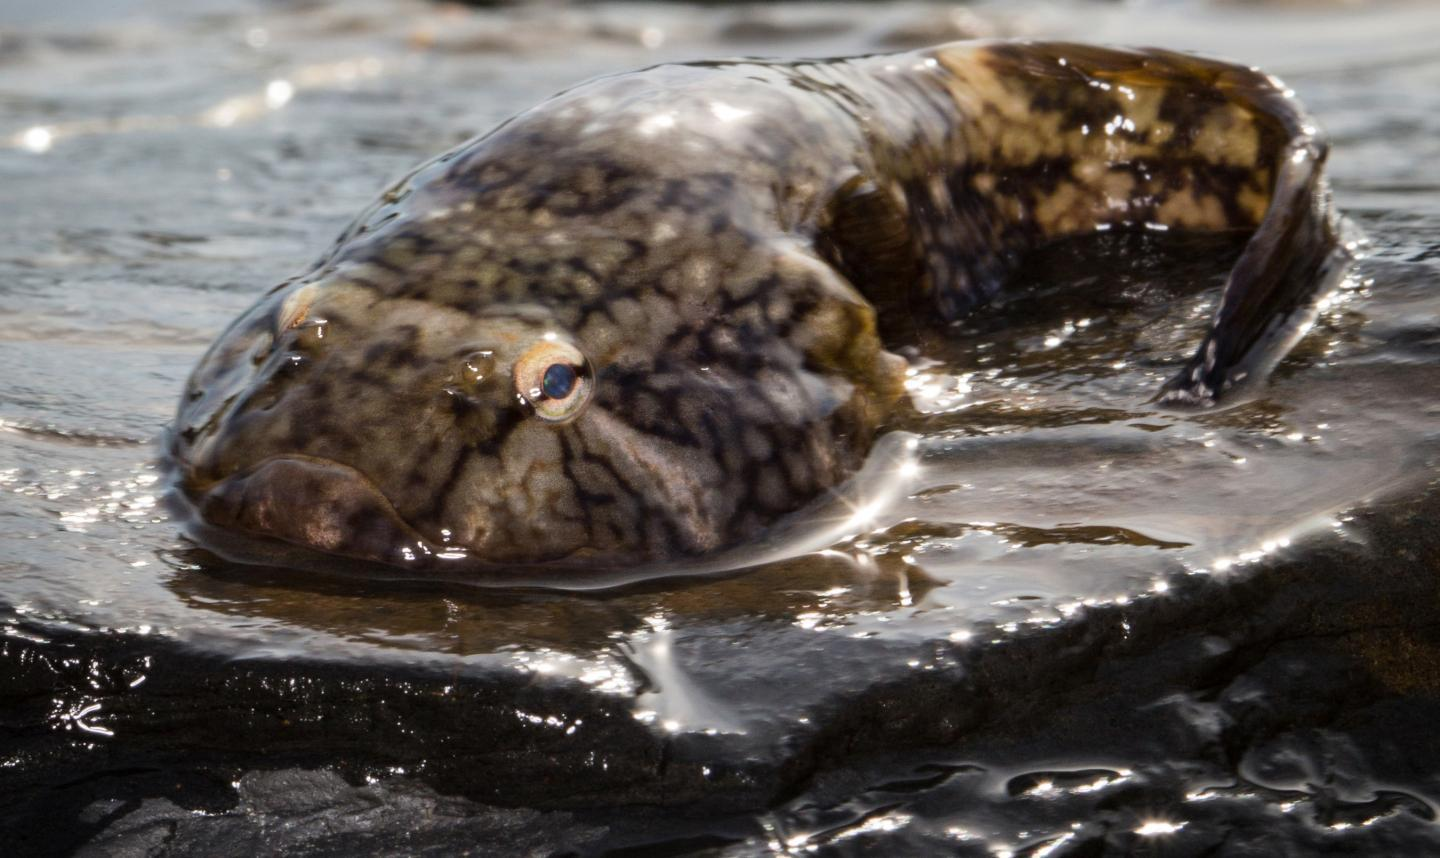 The Northern clingfish can support up to 230 times its own body weight when lifted